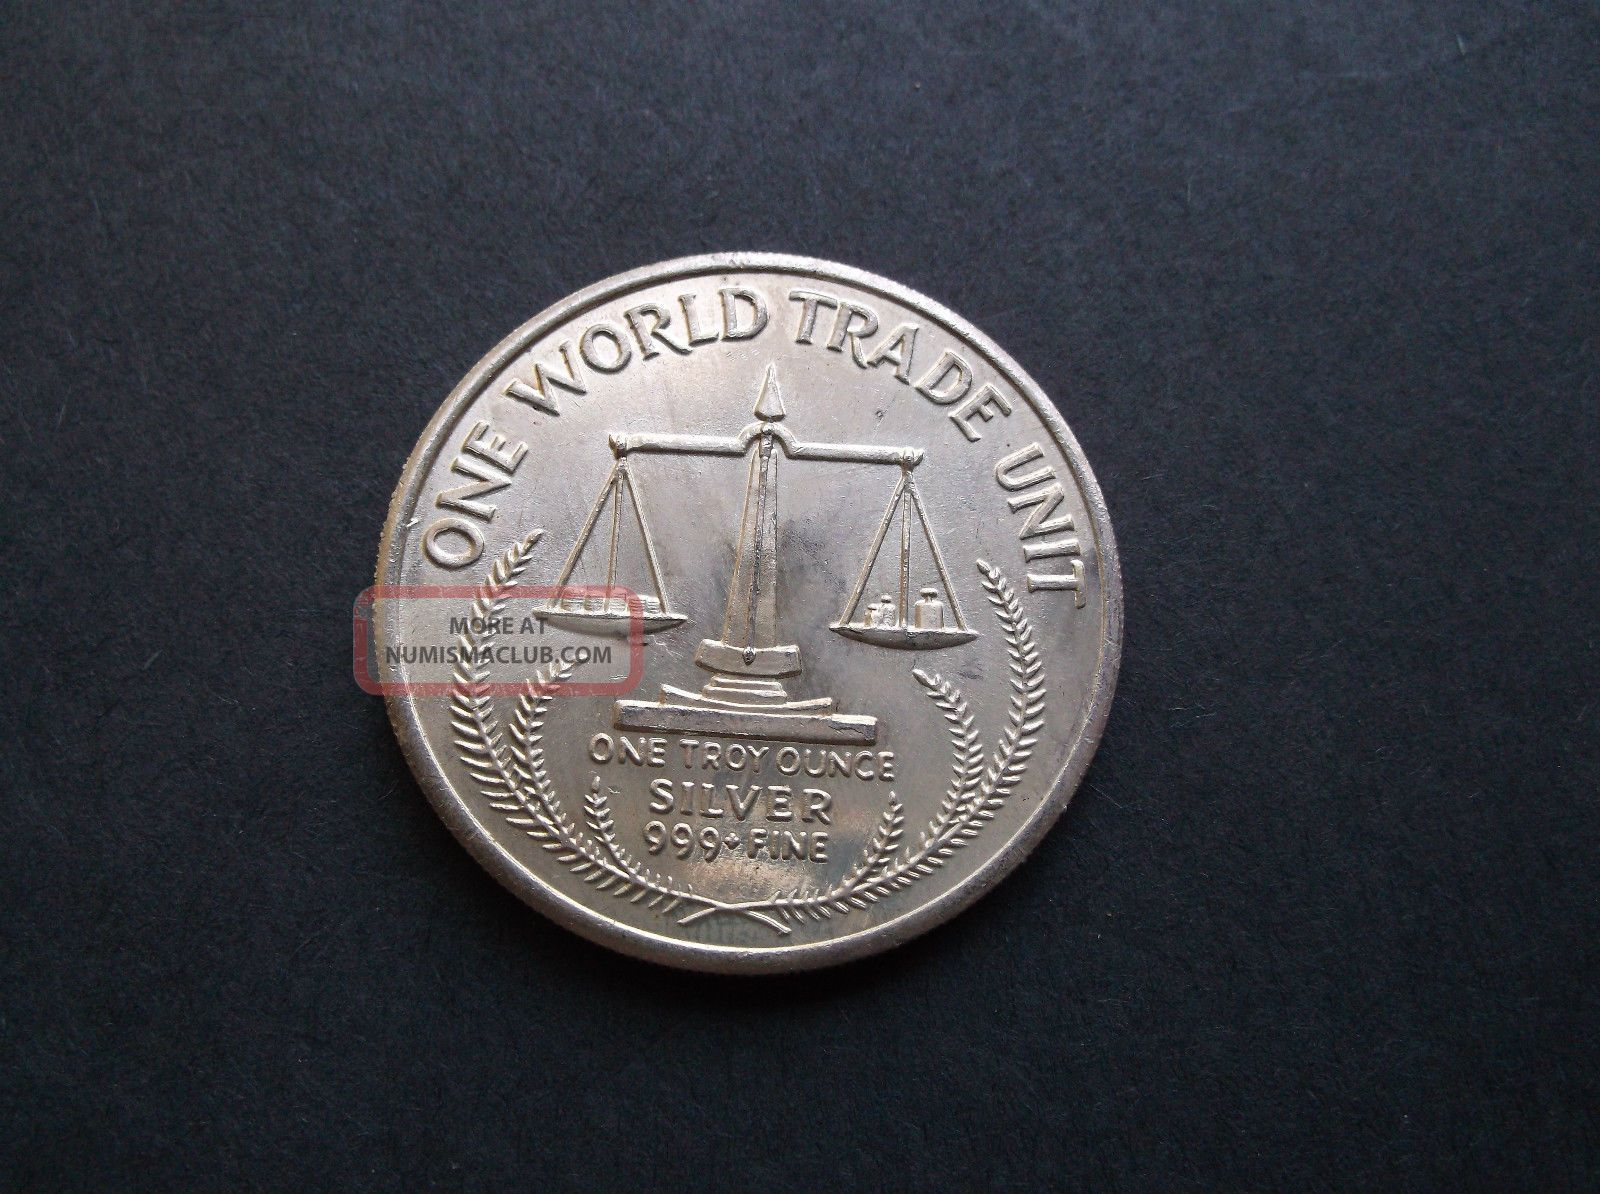 1984 One World Trade Unit 1 Troy Ounce 999 Fine Silver Tx